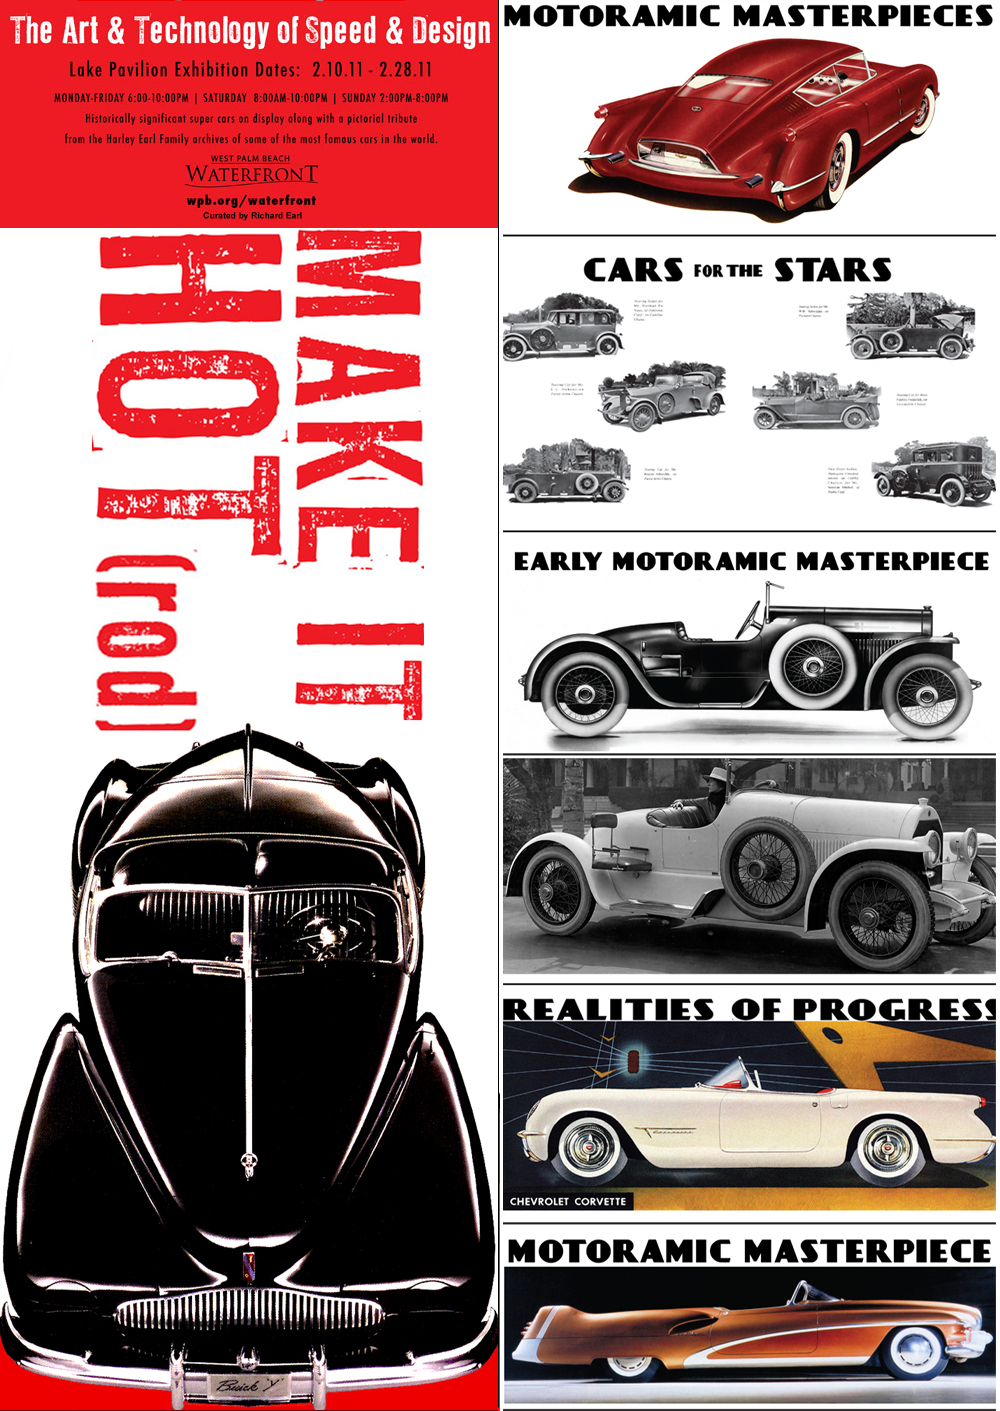 Some of the new photos that were carefully selected and added to the exhibit. Please contact us if you're interested in displaying the Harley Earl photo exhibit.